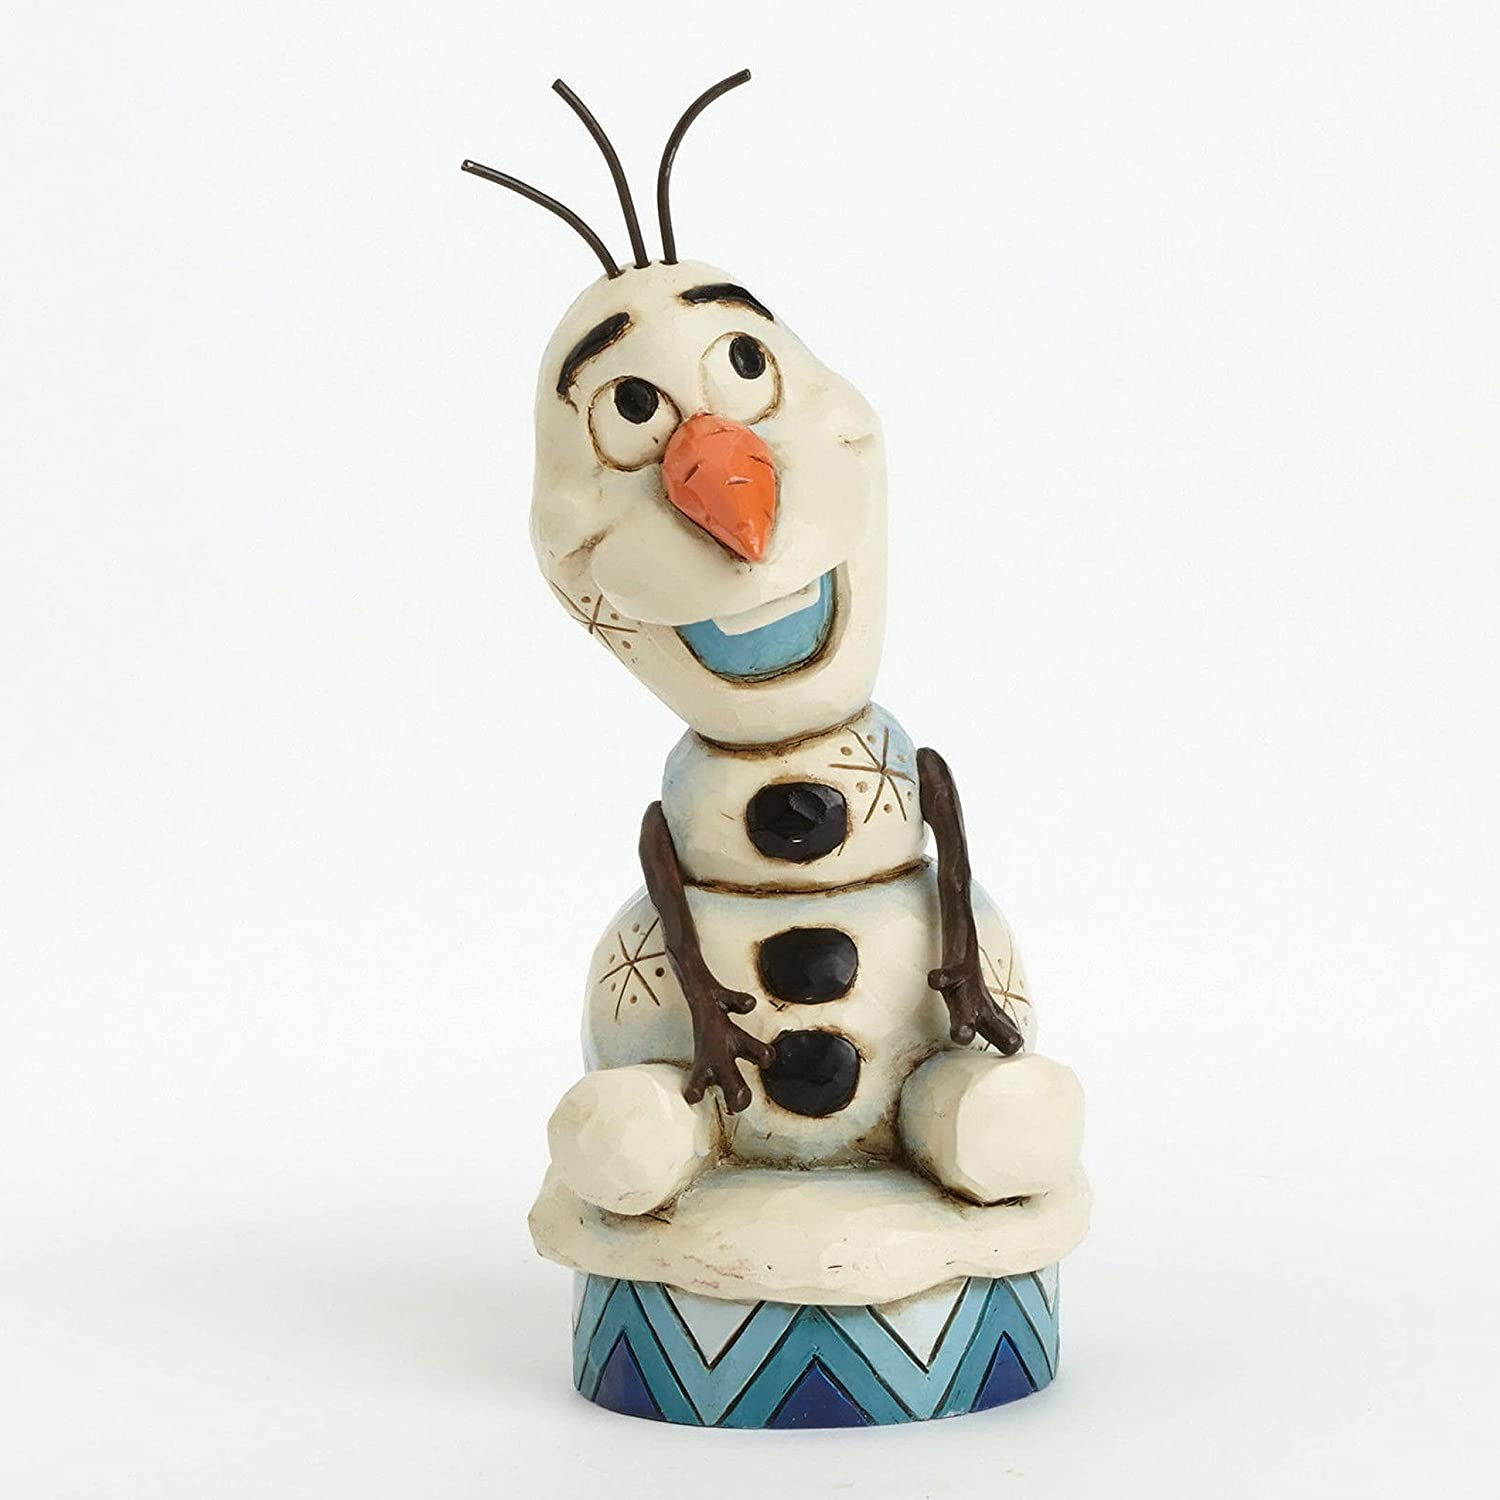 Jim Shore Disney Traditions Olaf from Frozen Figurine, 5.1